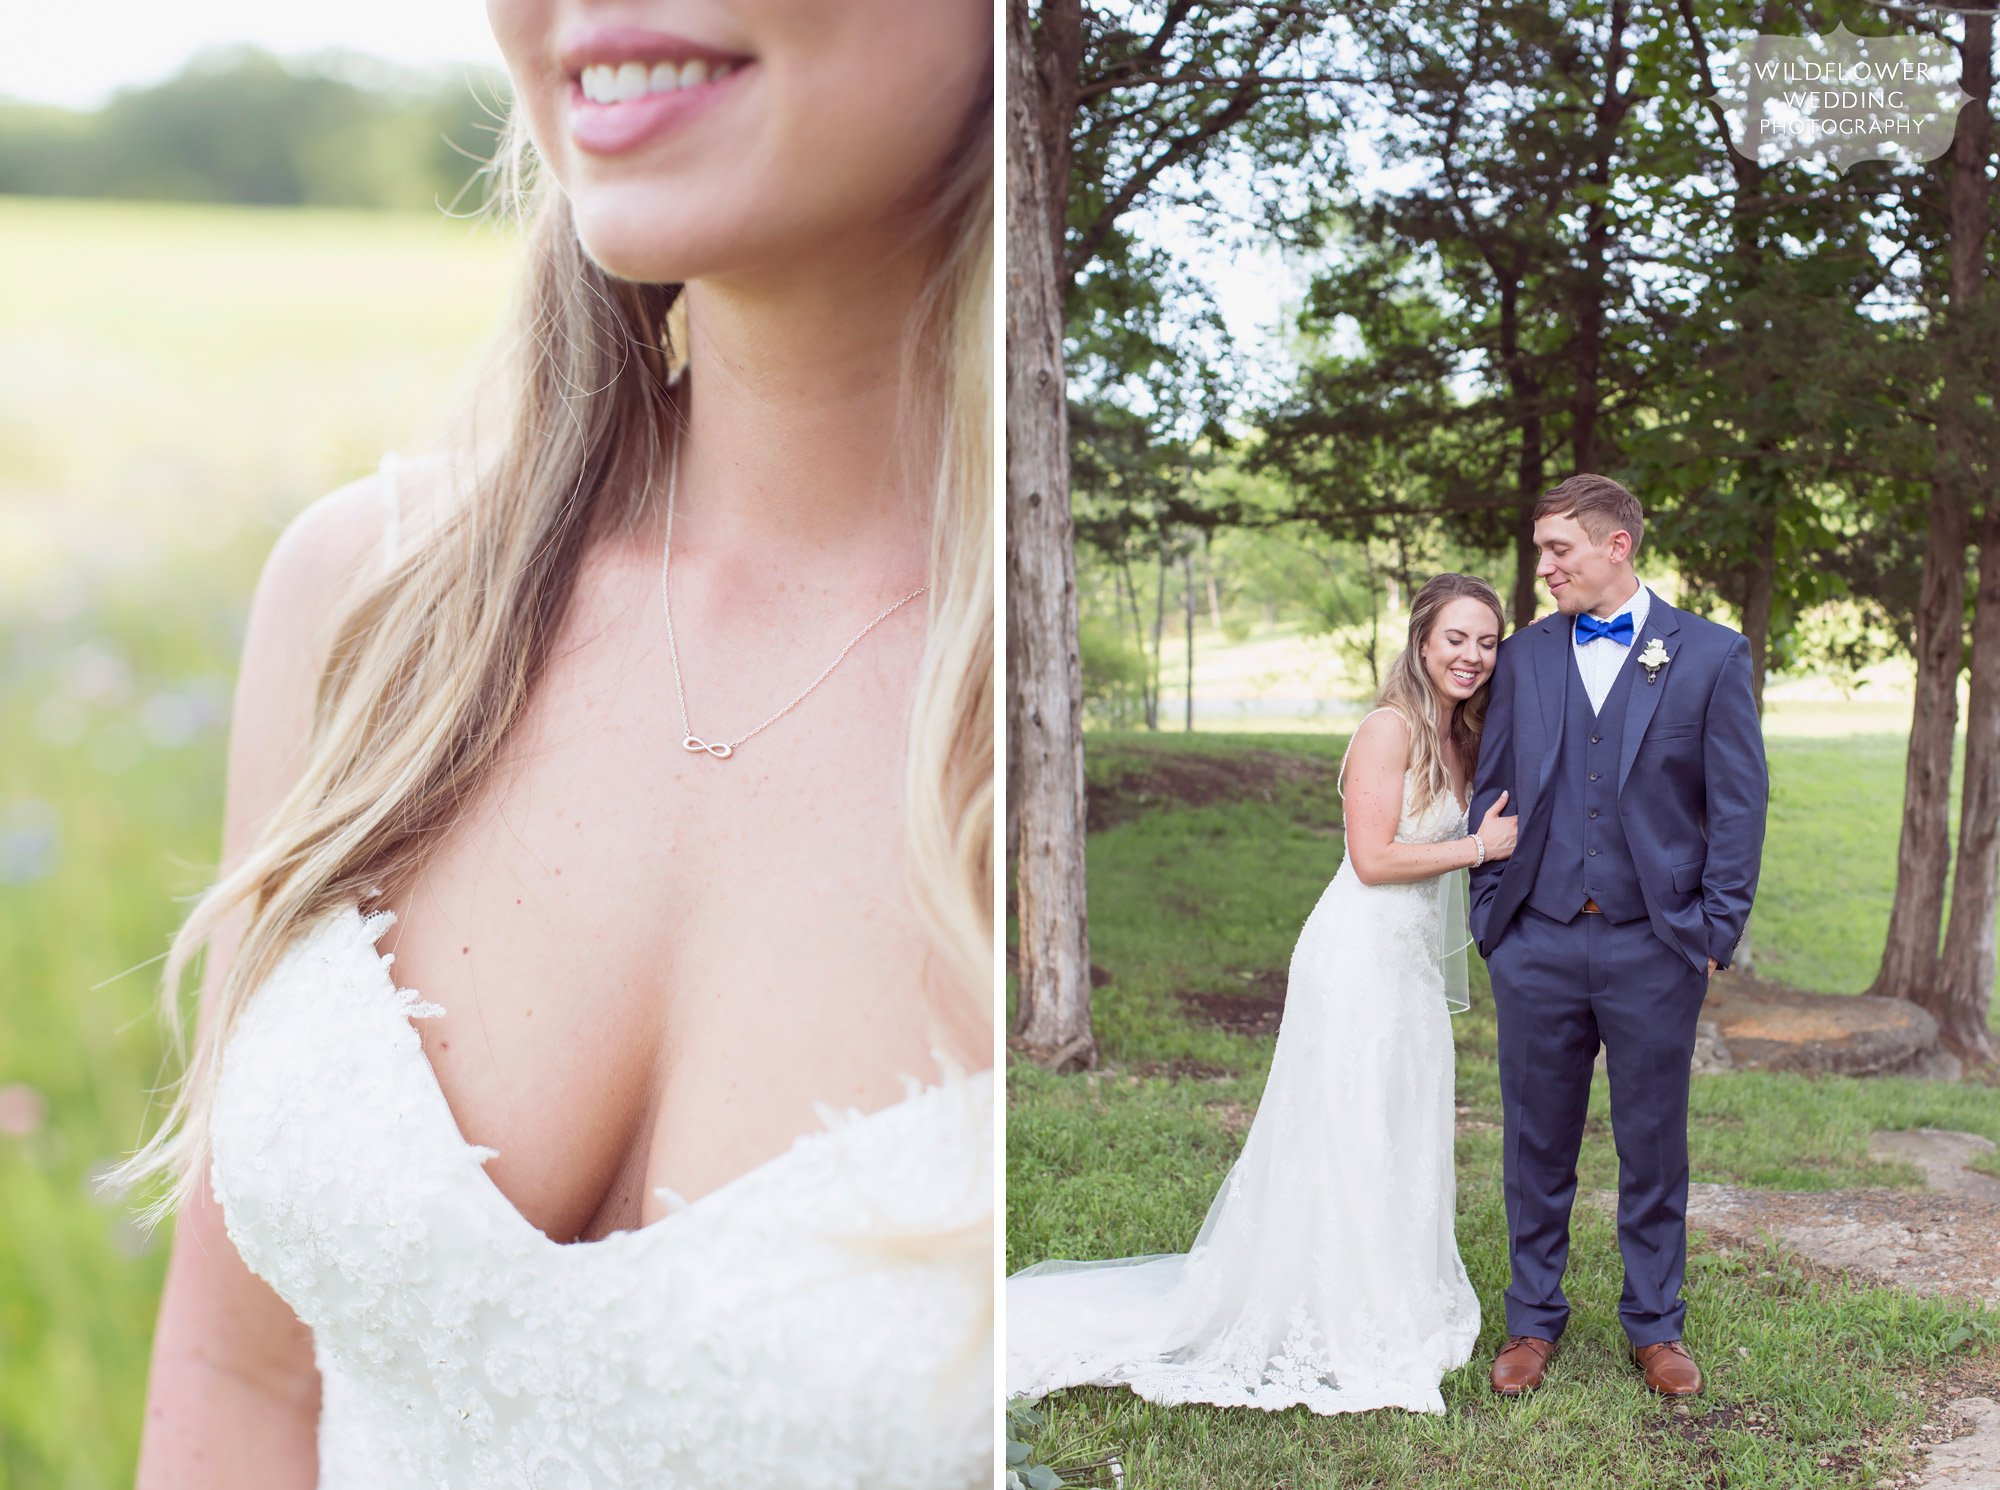 Simple tiffanys figure 8 necklace for this country wedding at the Kempker's Back 40 wedding barn venue.